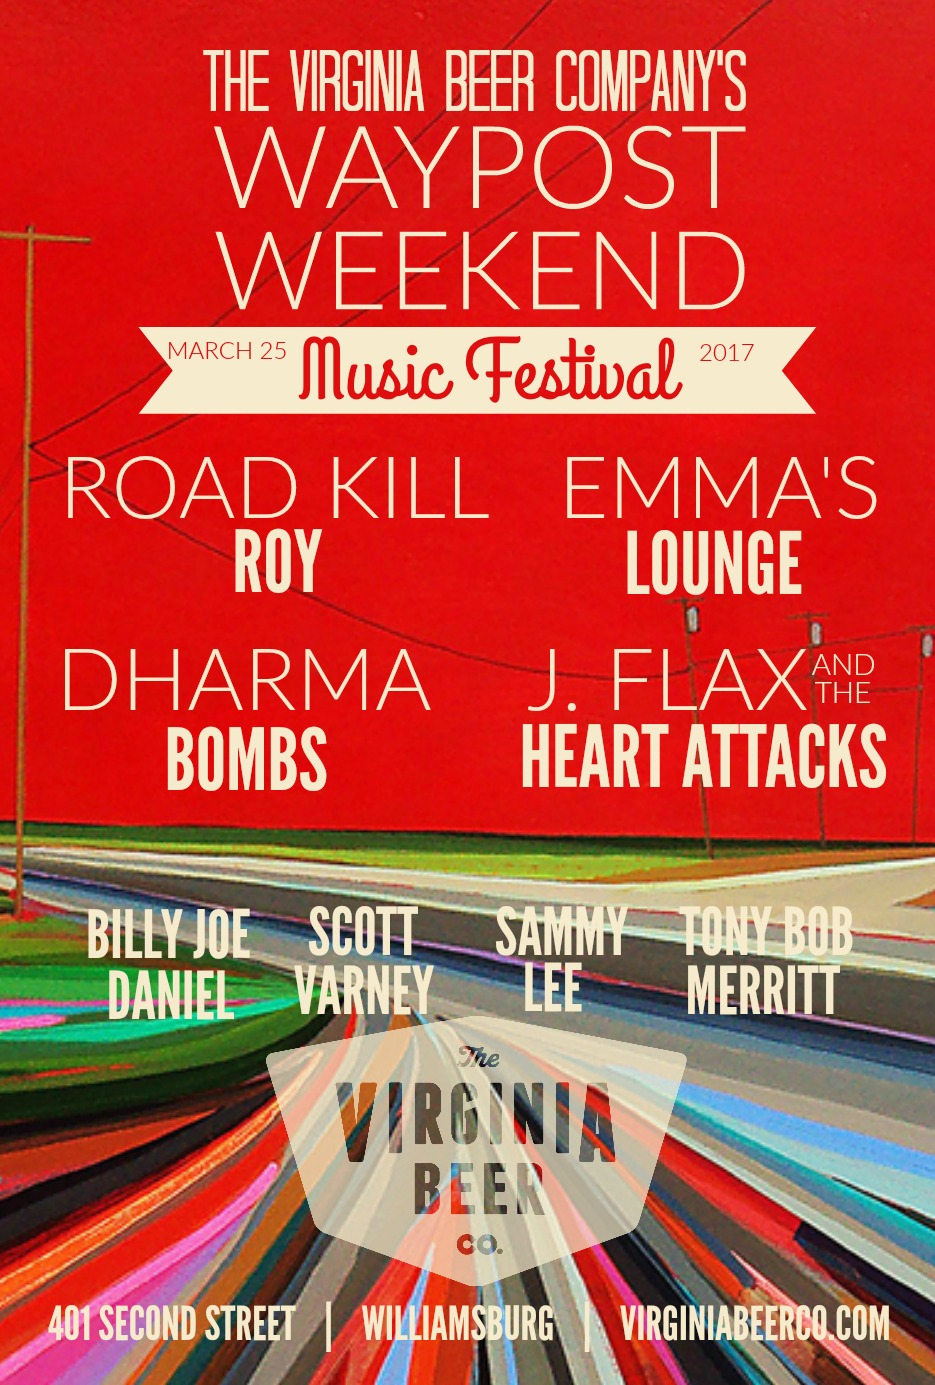 8 musical acts performing on two stages from 2-8 pm!